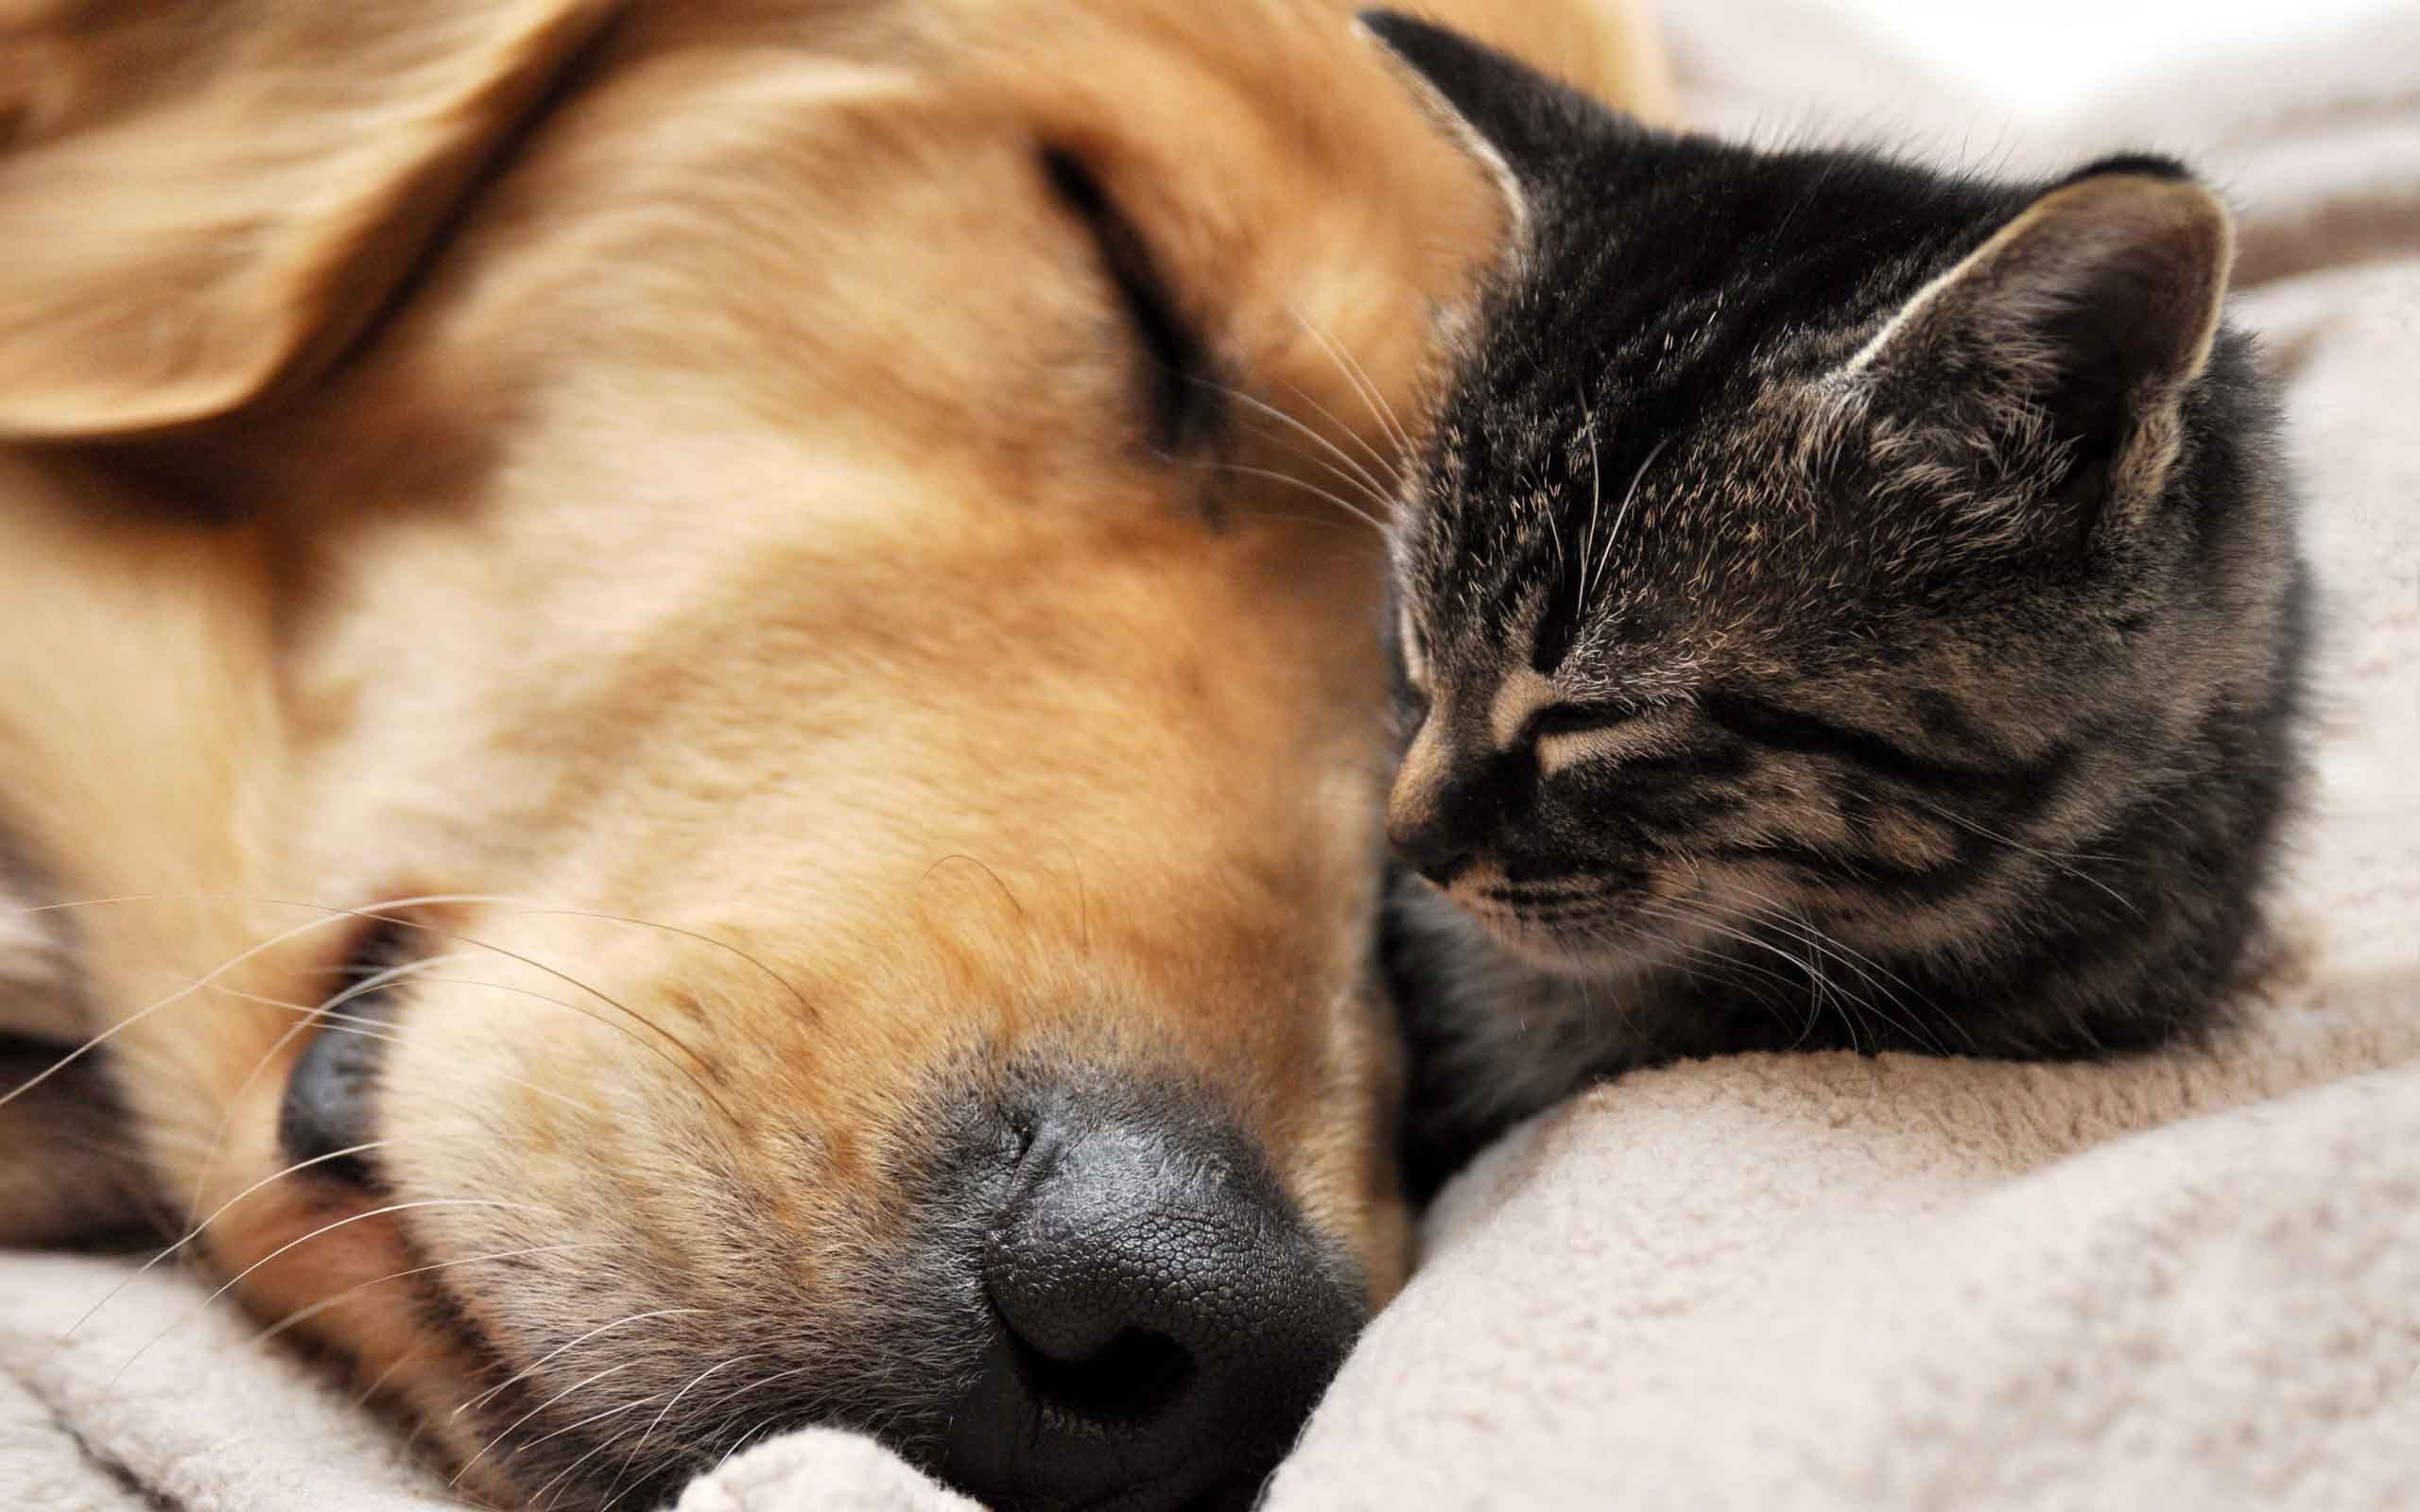 Cat and dog sleeping wallpapers and images – wallpapers, pictures .